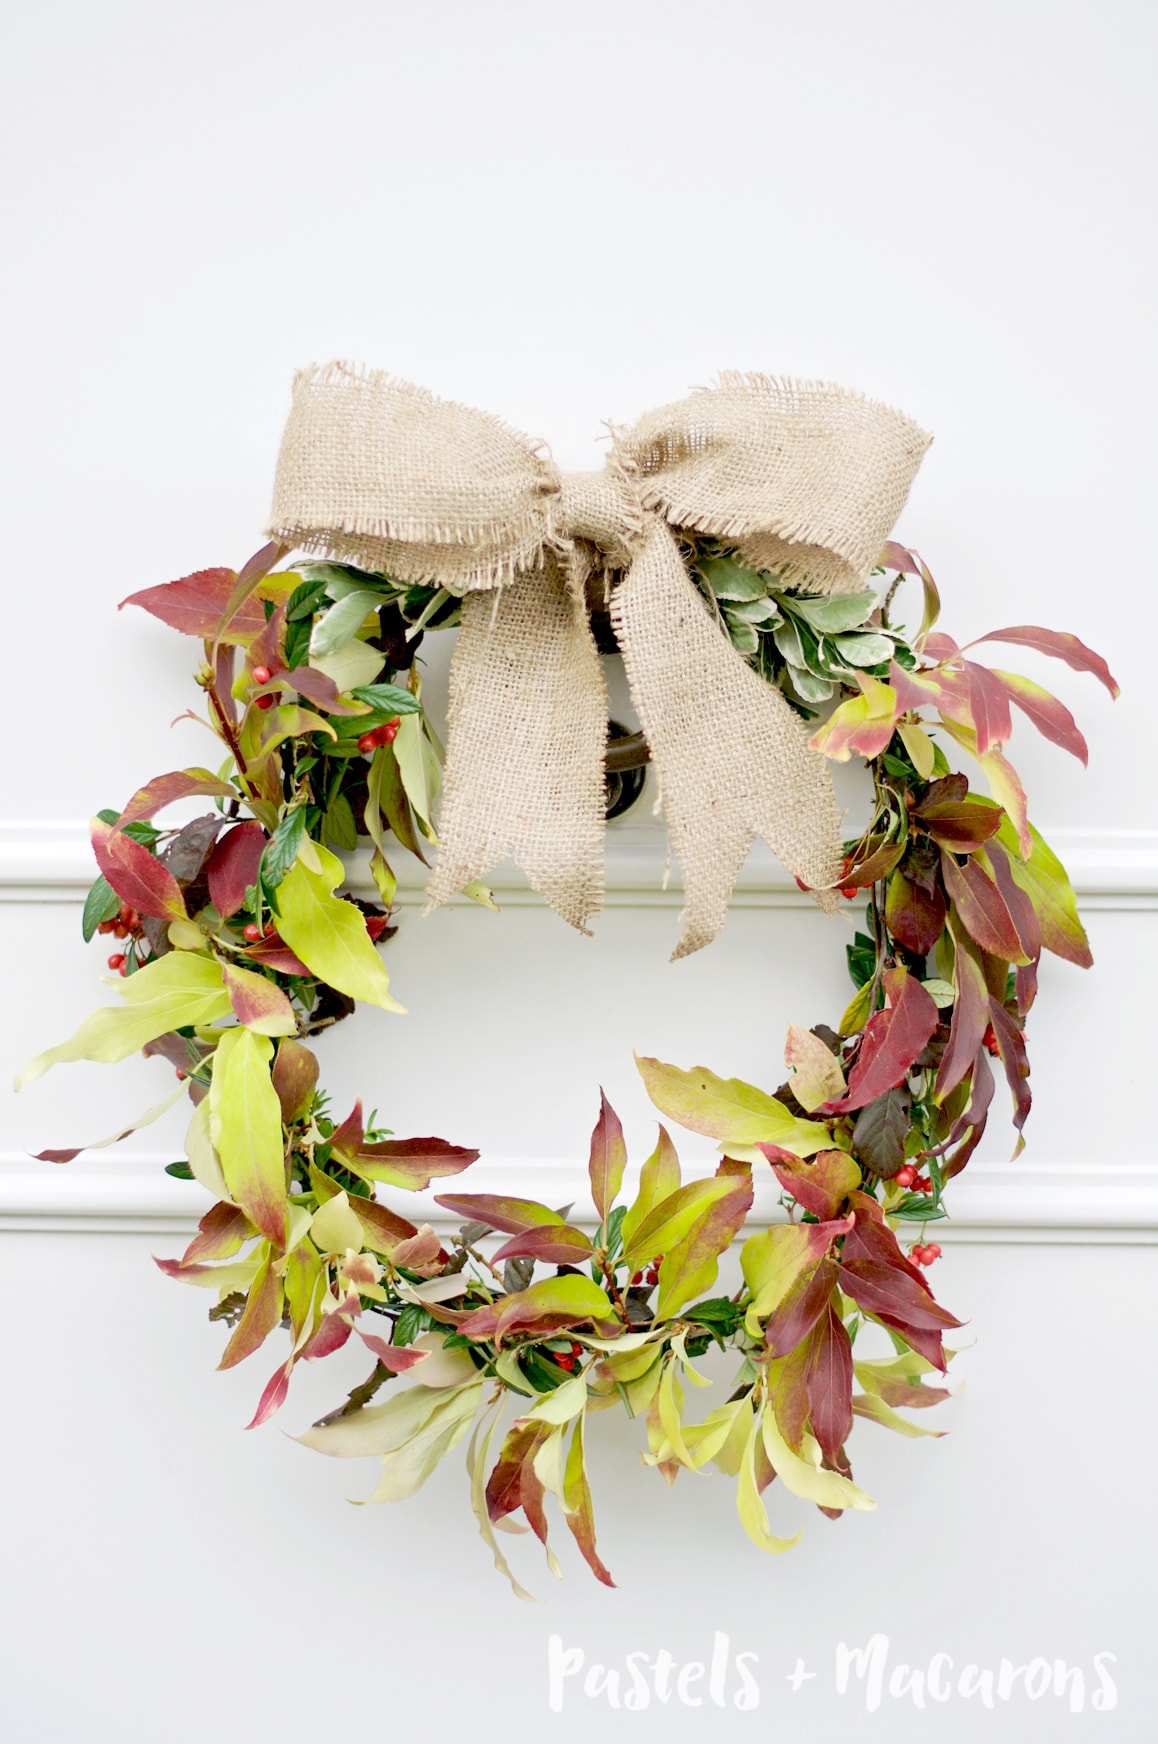 SIOMT Feature - Make a Fresh Wreath